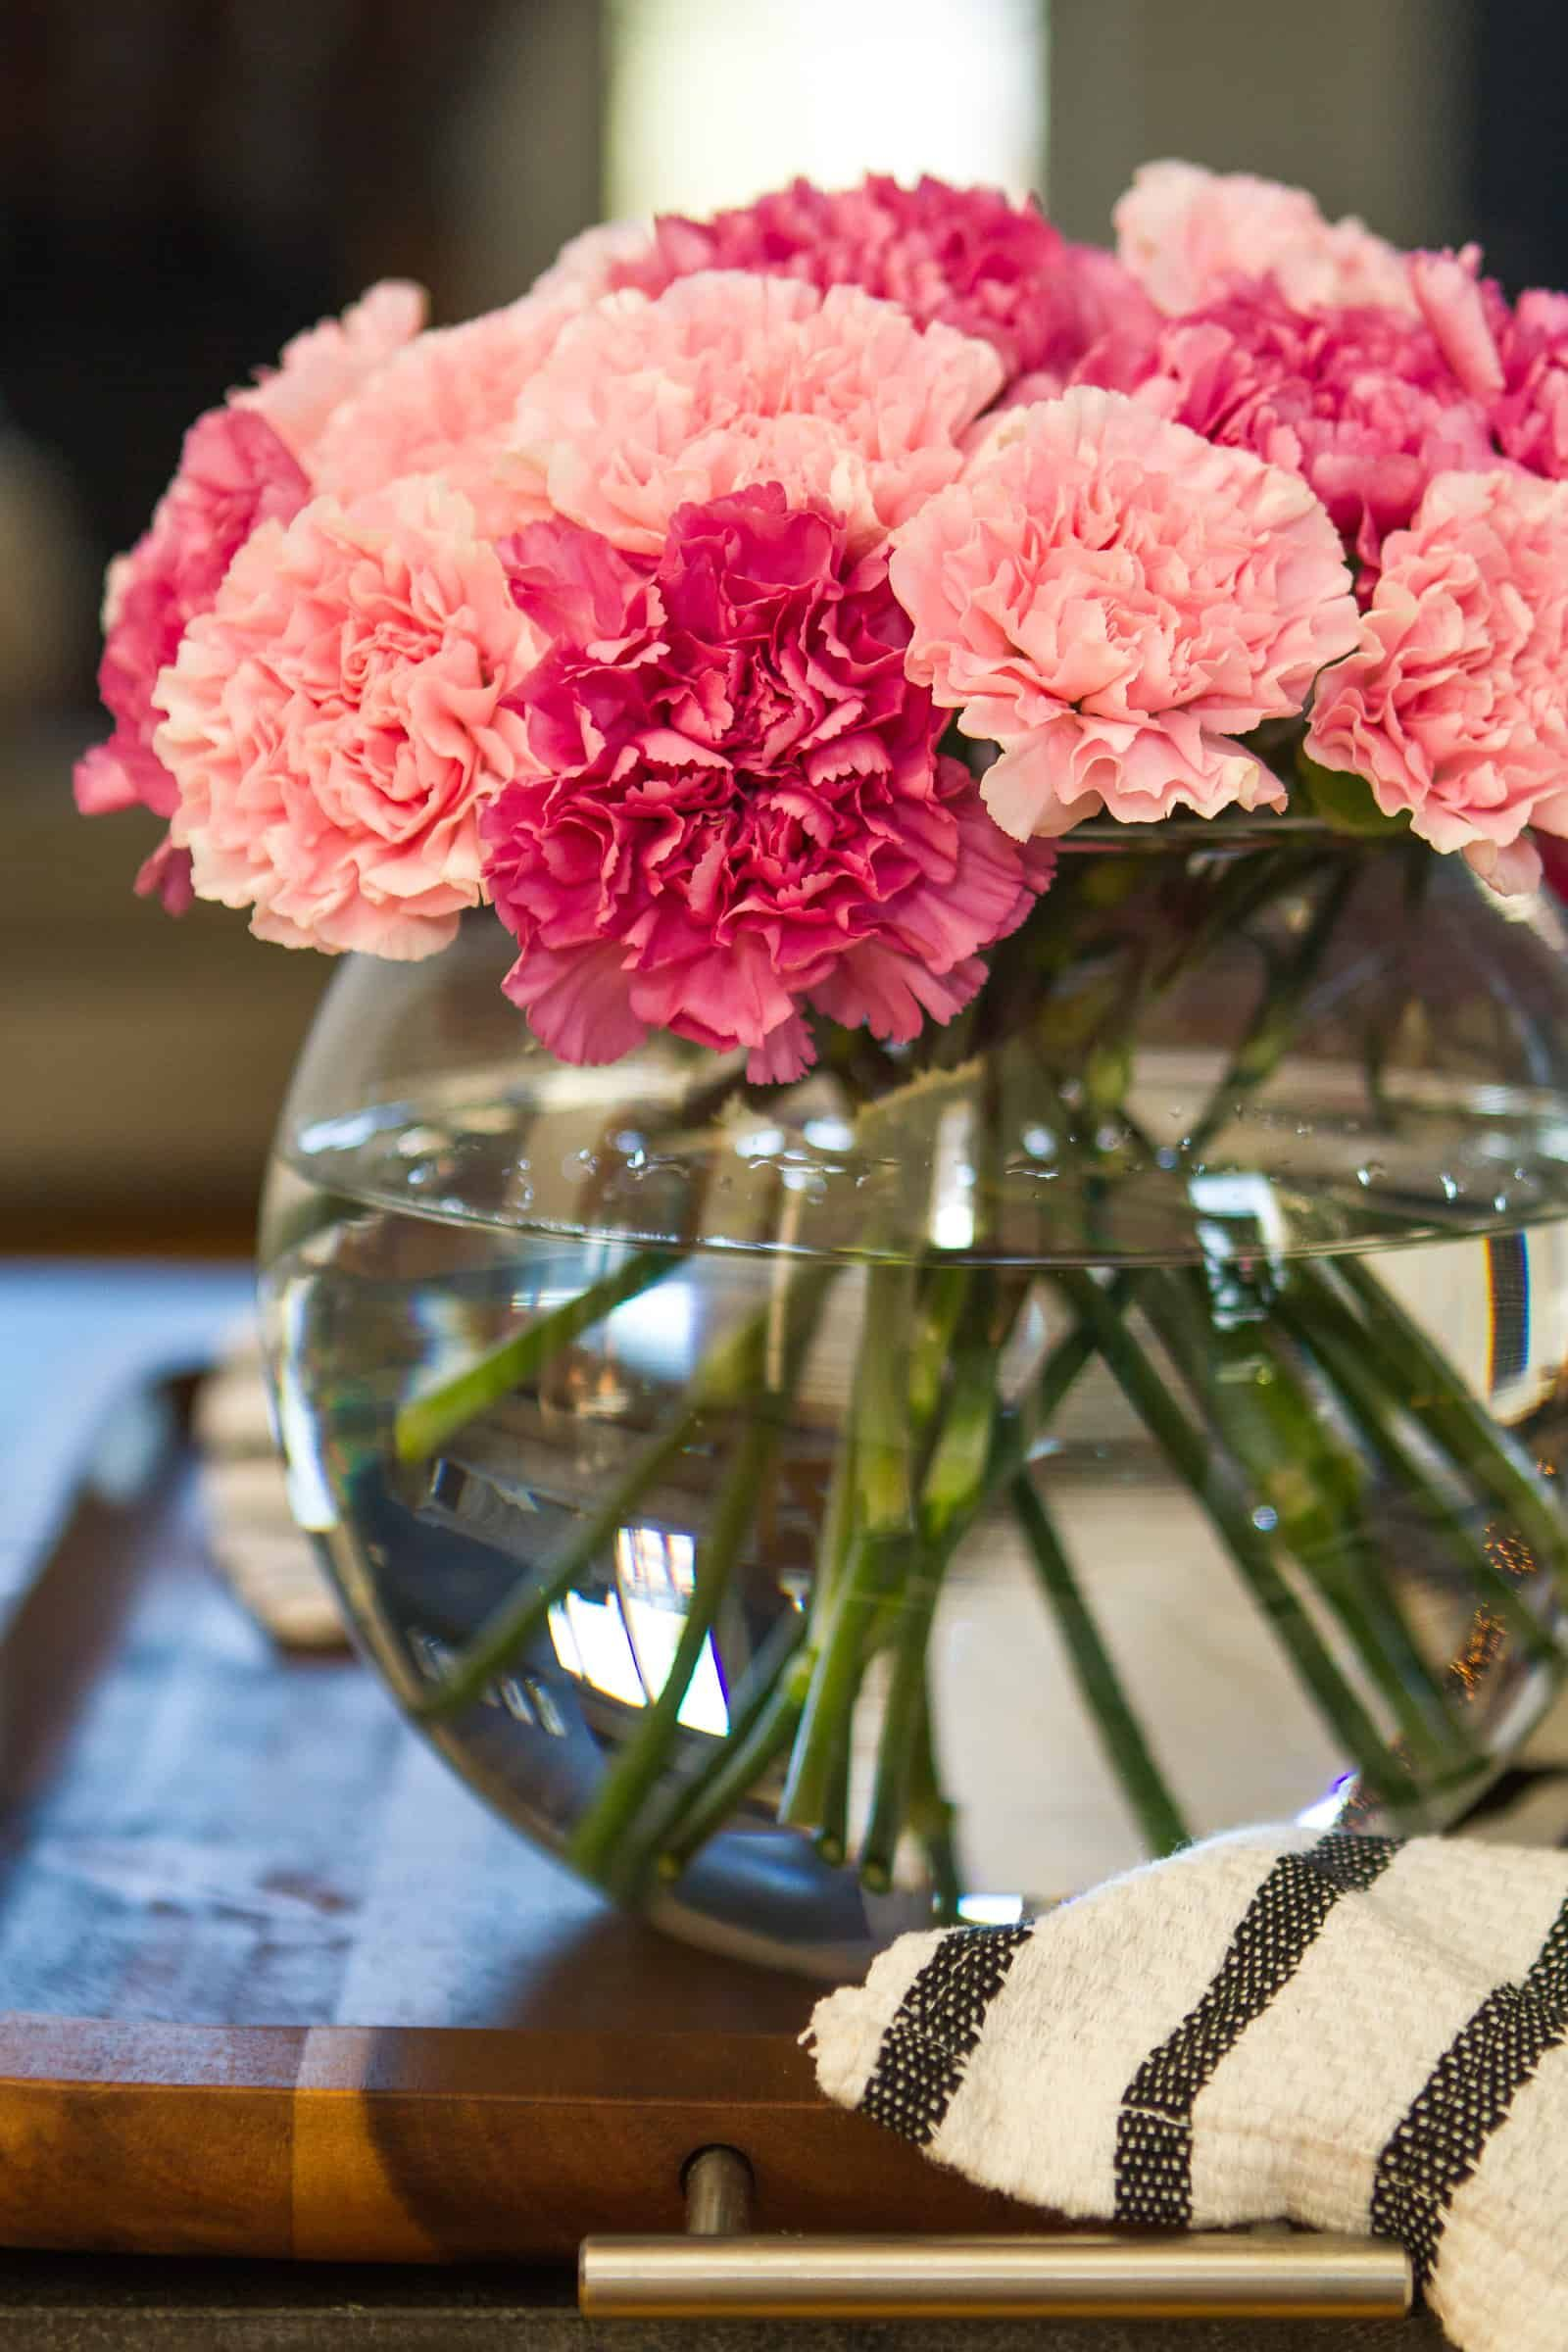 How to create a simple yet stunning carnation flower